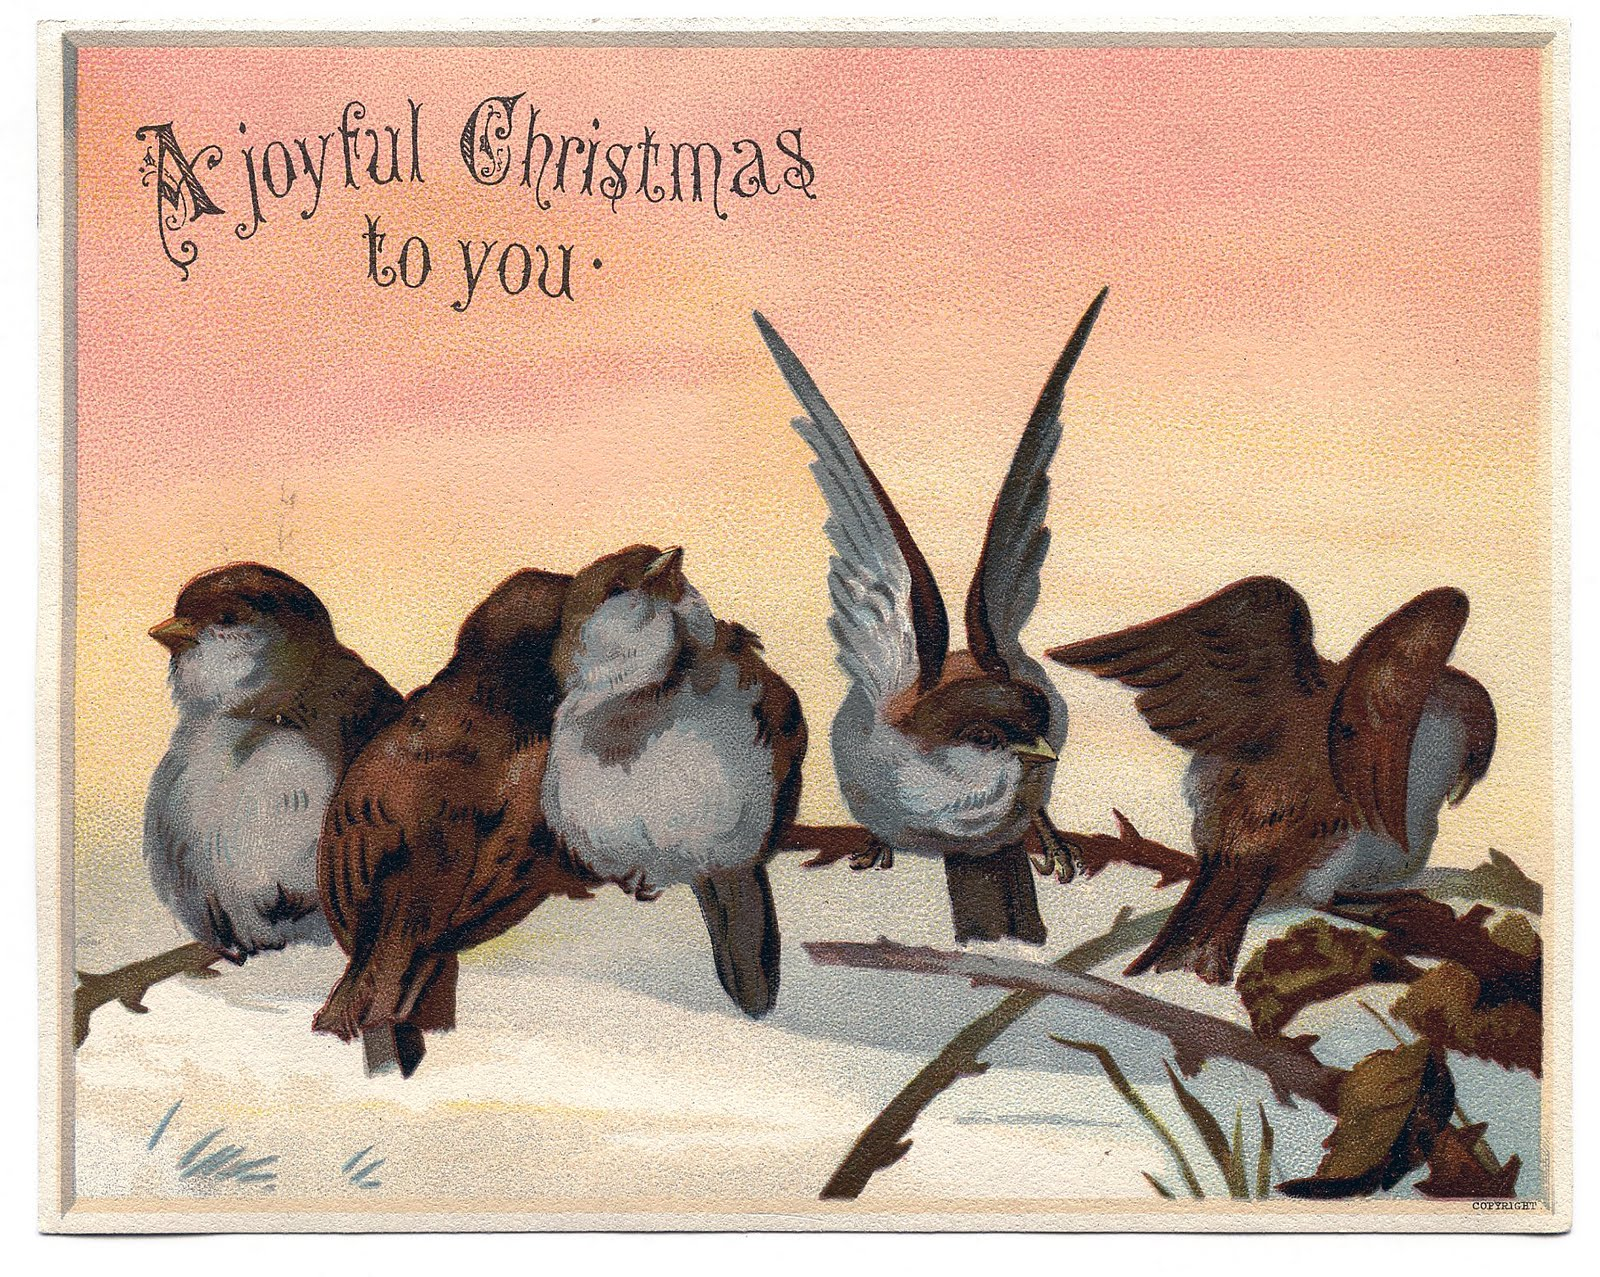 Vintage Christmas Graphic Image Cute Birds On Branch